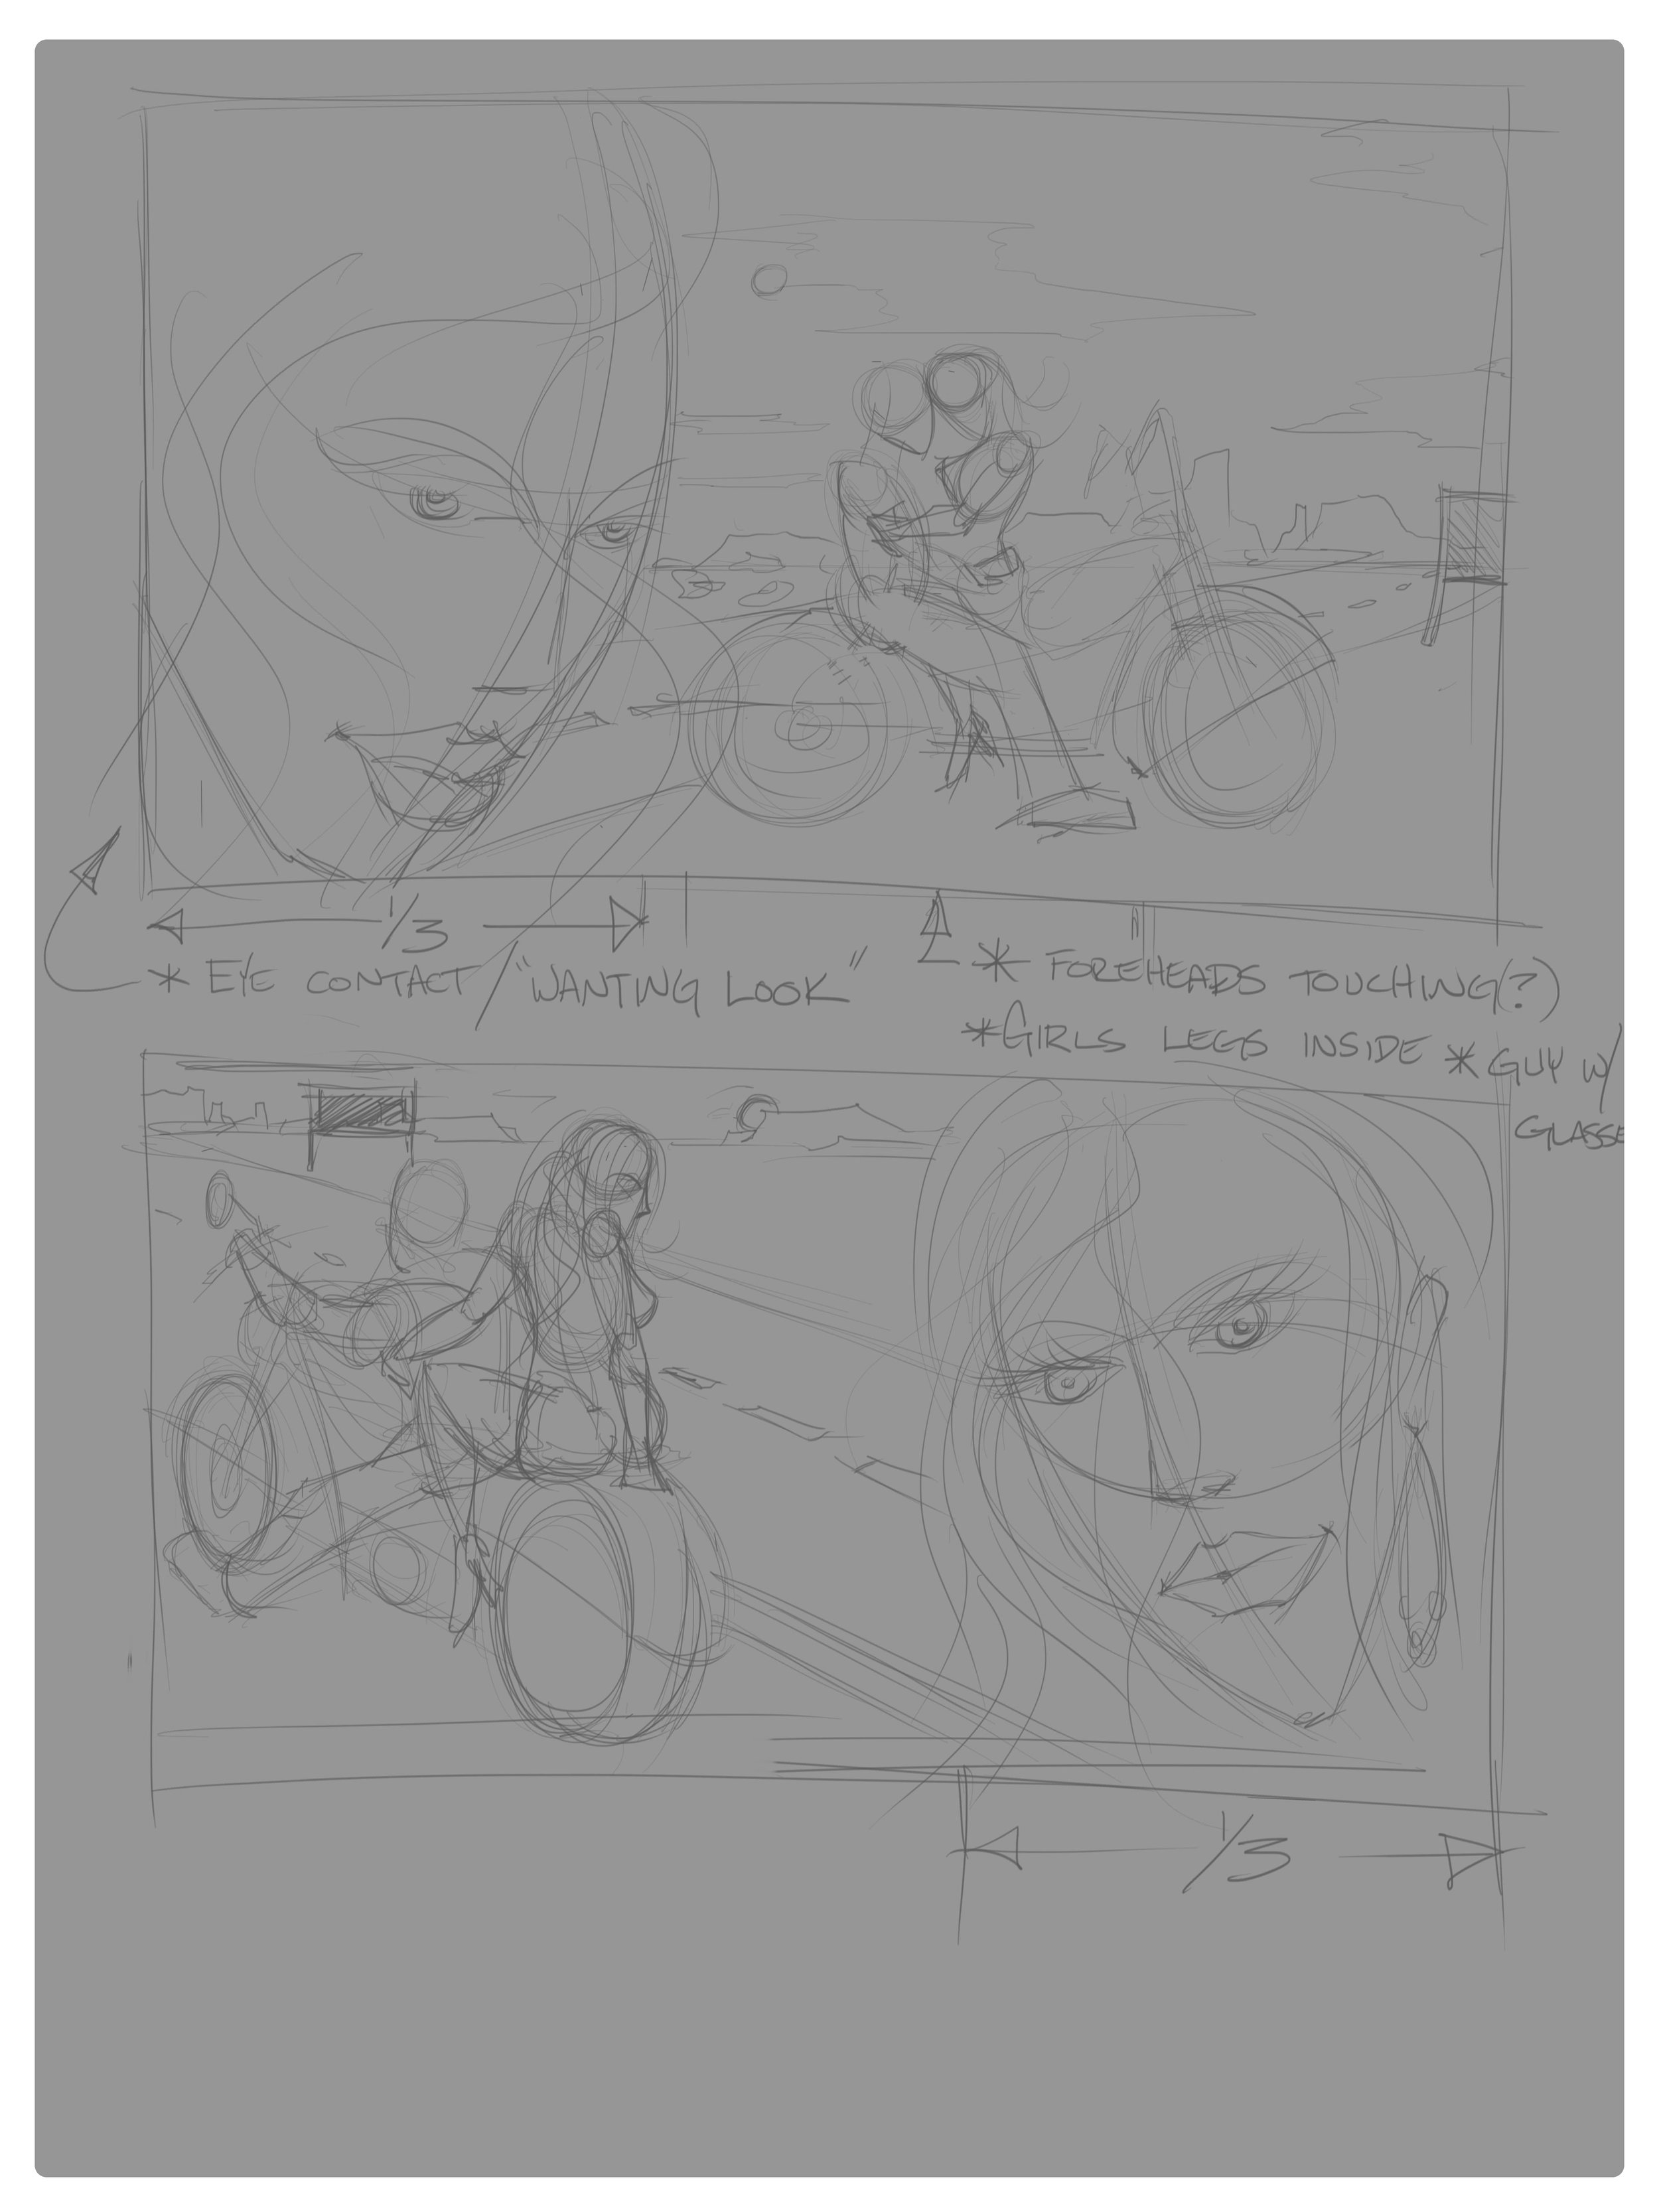 blog_2015_design_storyboard-sketch-for-commercial.jpg